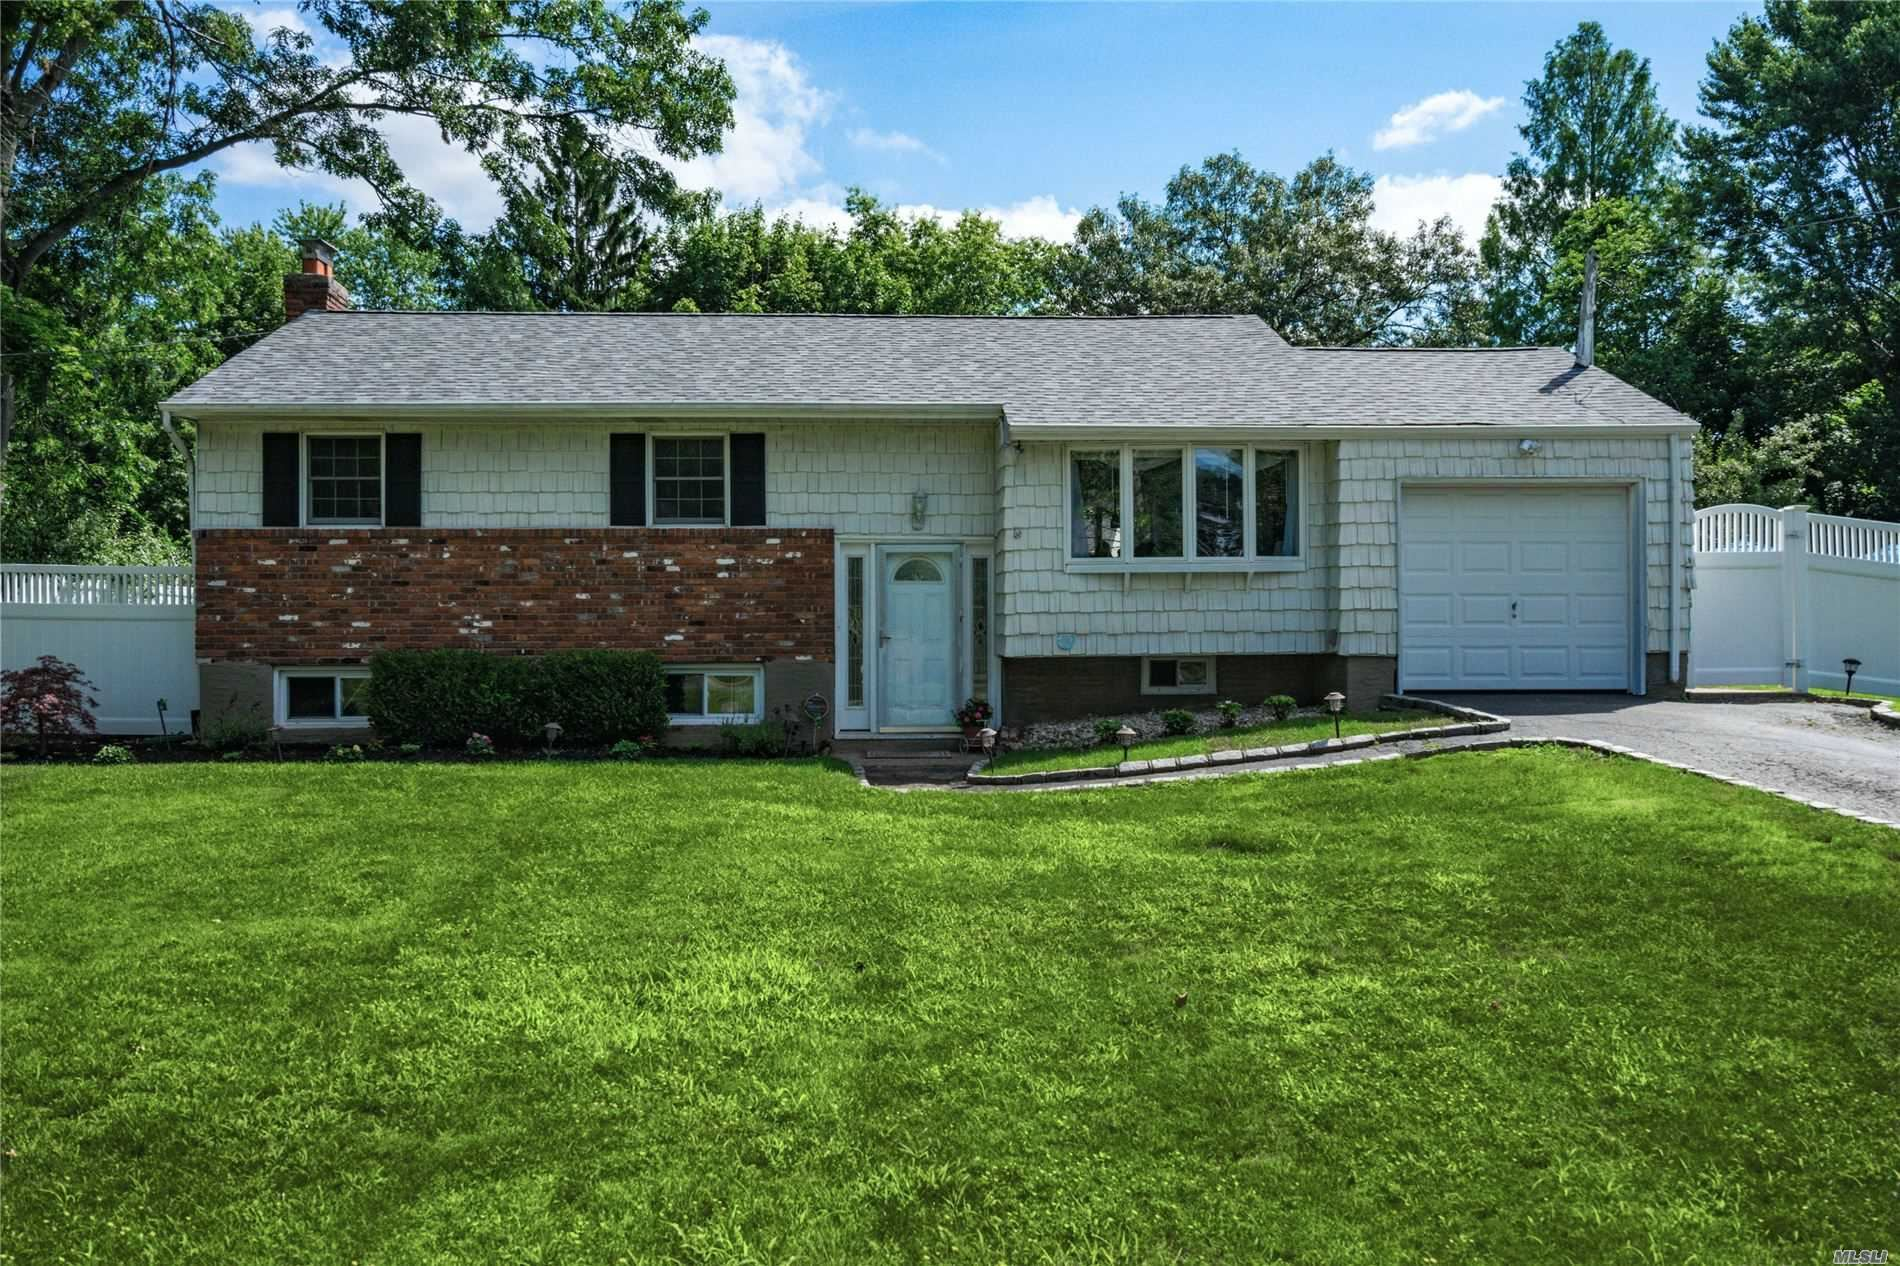 17 Metcale Lane, East Northport, NY 11731 - MLS#: 3237814